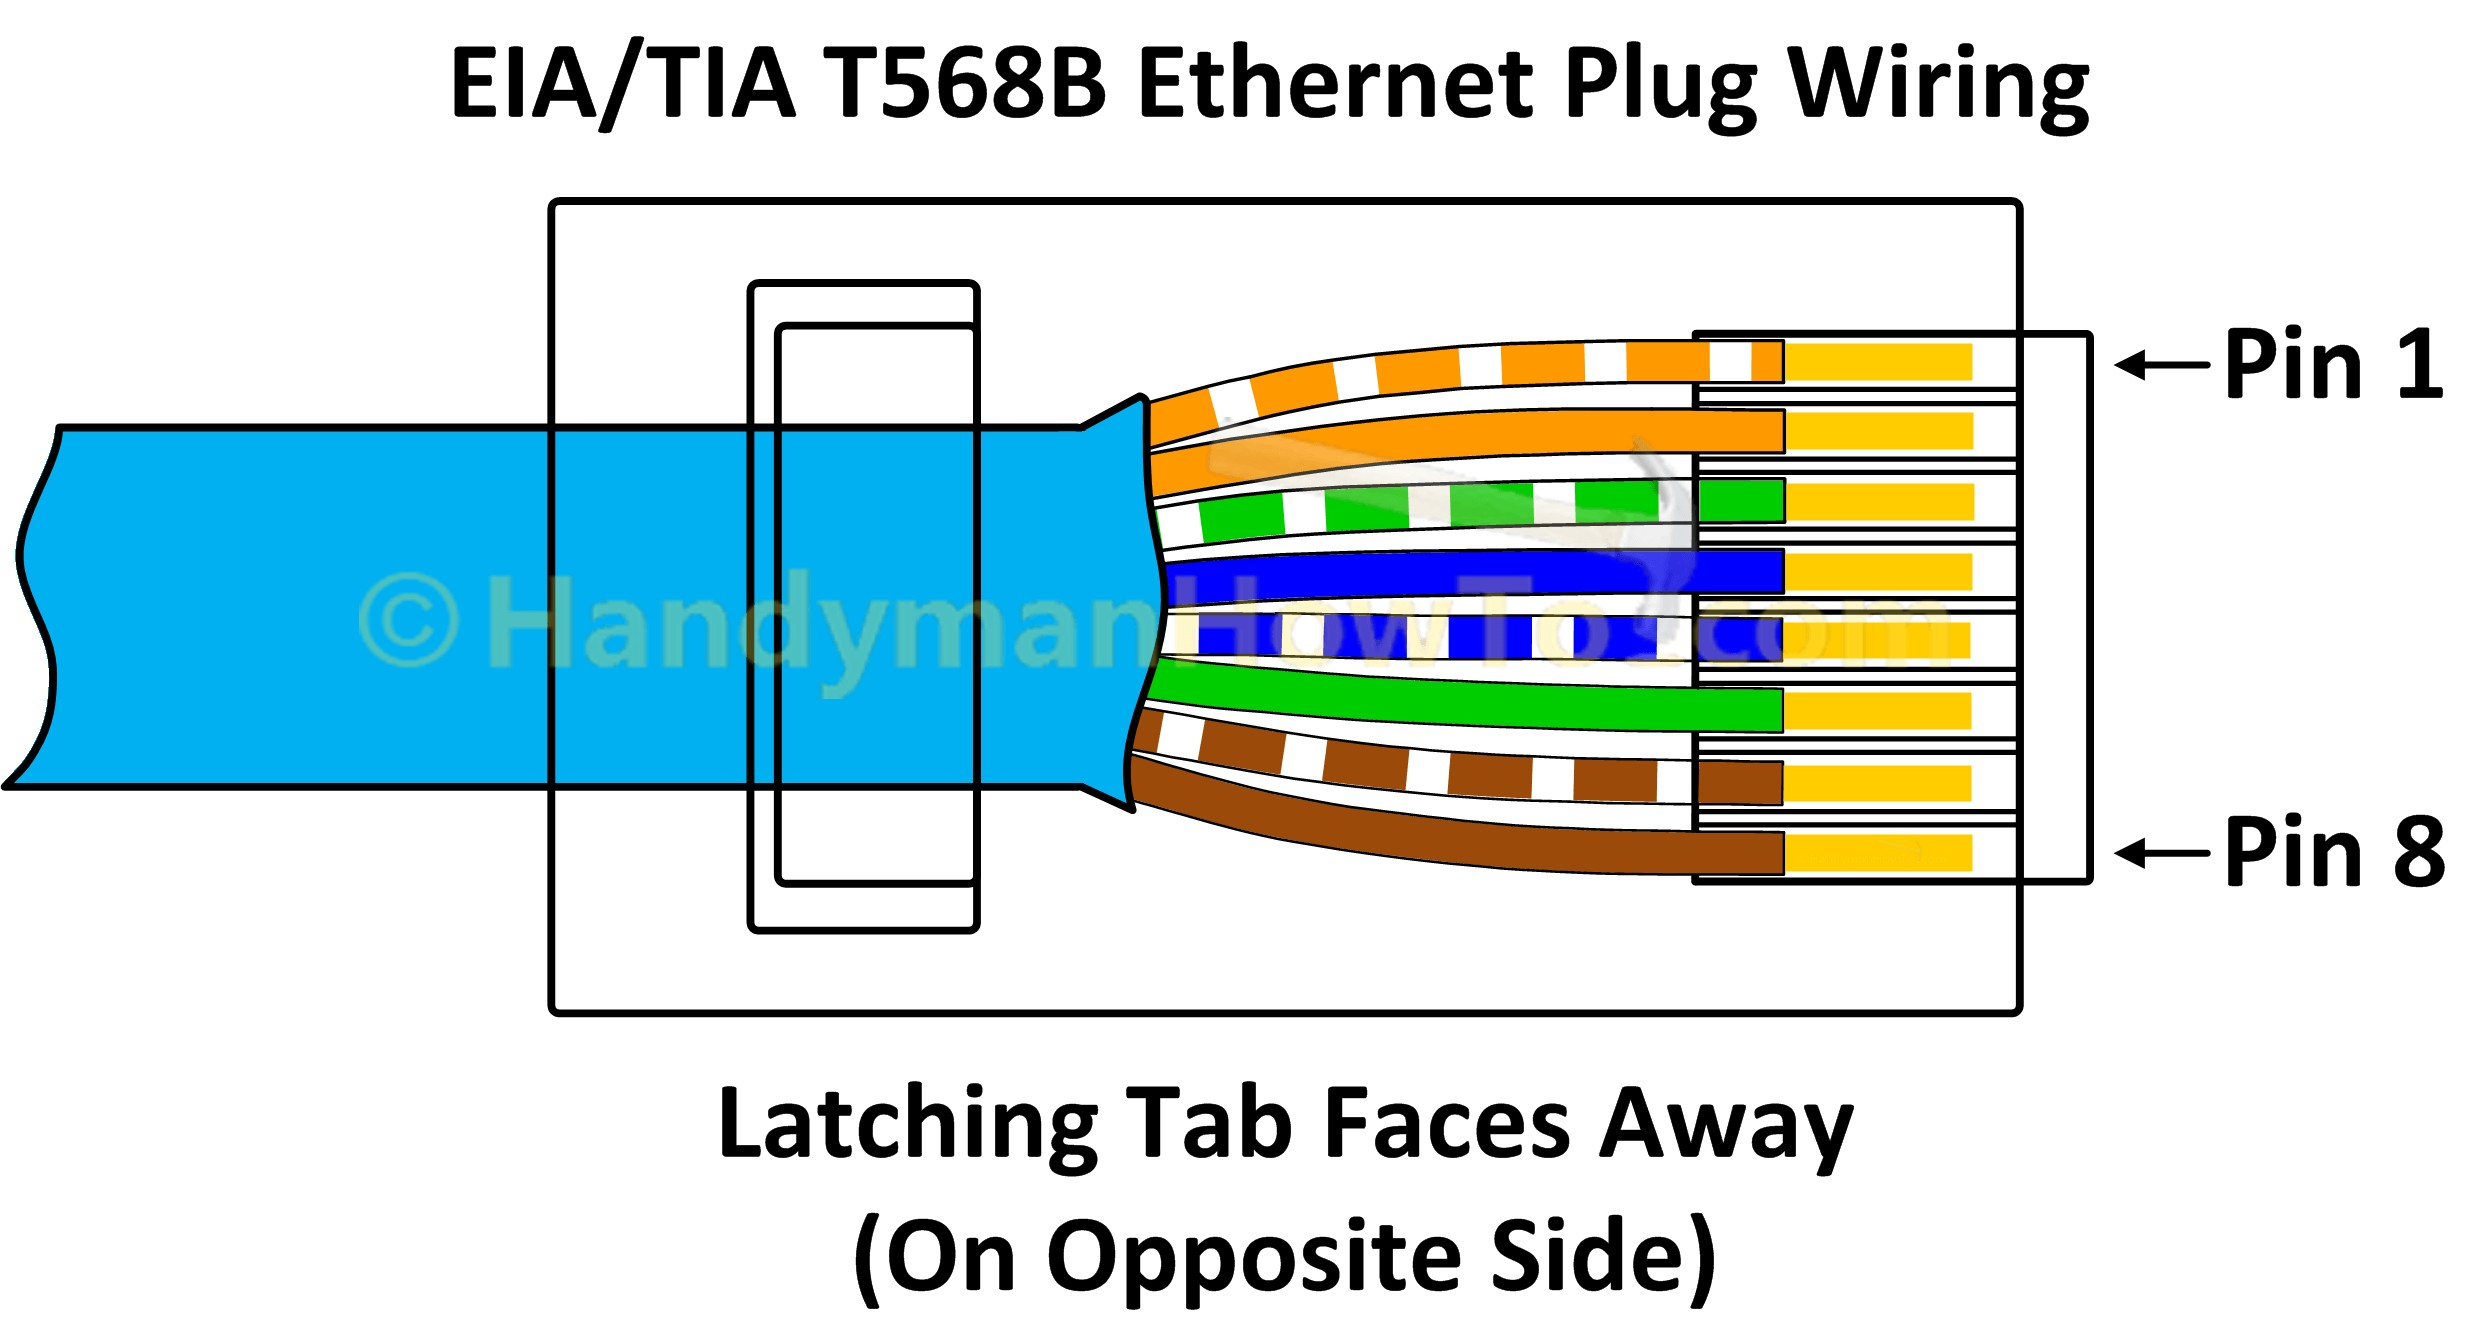 Cat6 Cable Wiring Diagram Ethernet Cable Wiring Diagram Cat5e Of Cat6 Cable Wiring Diagram